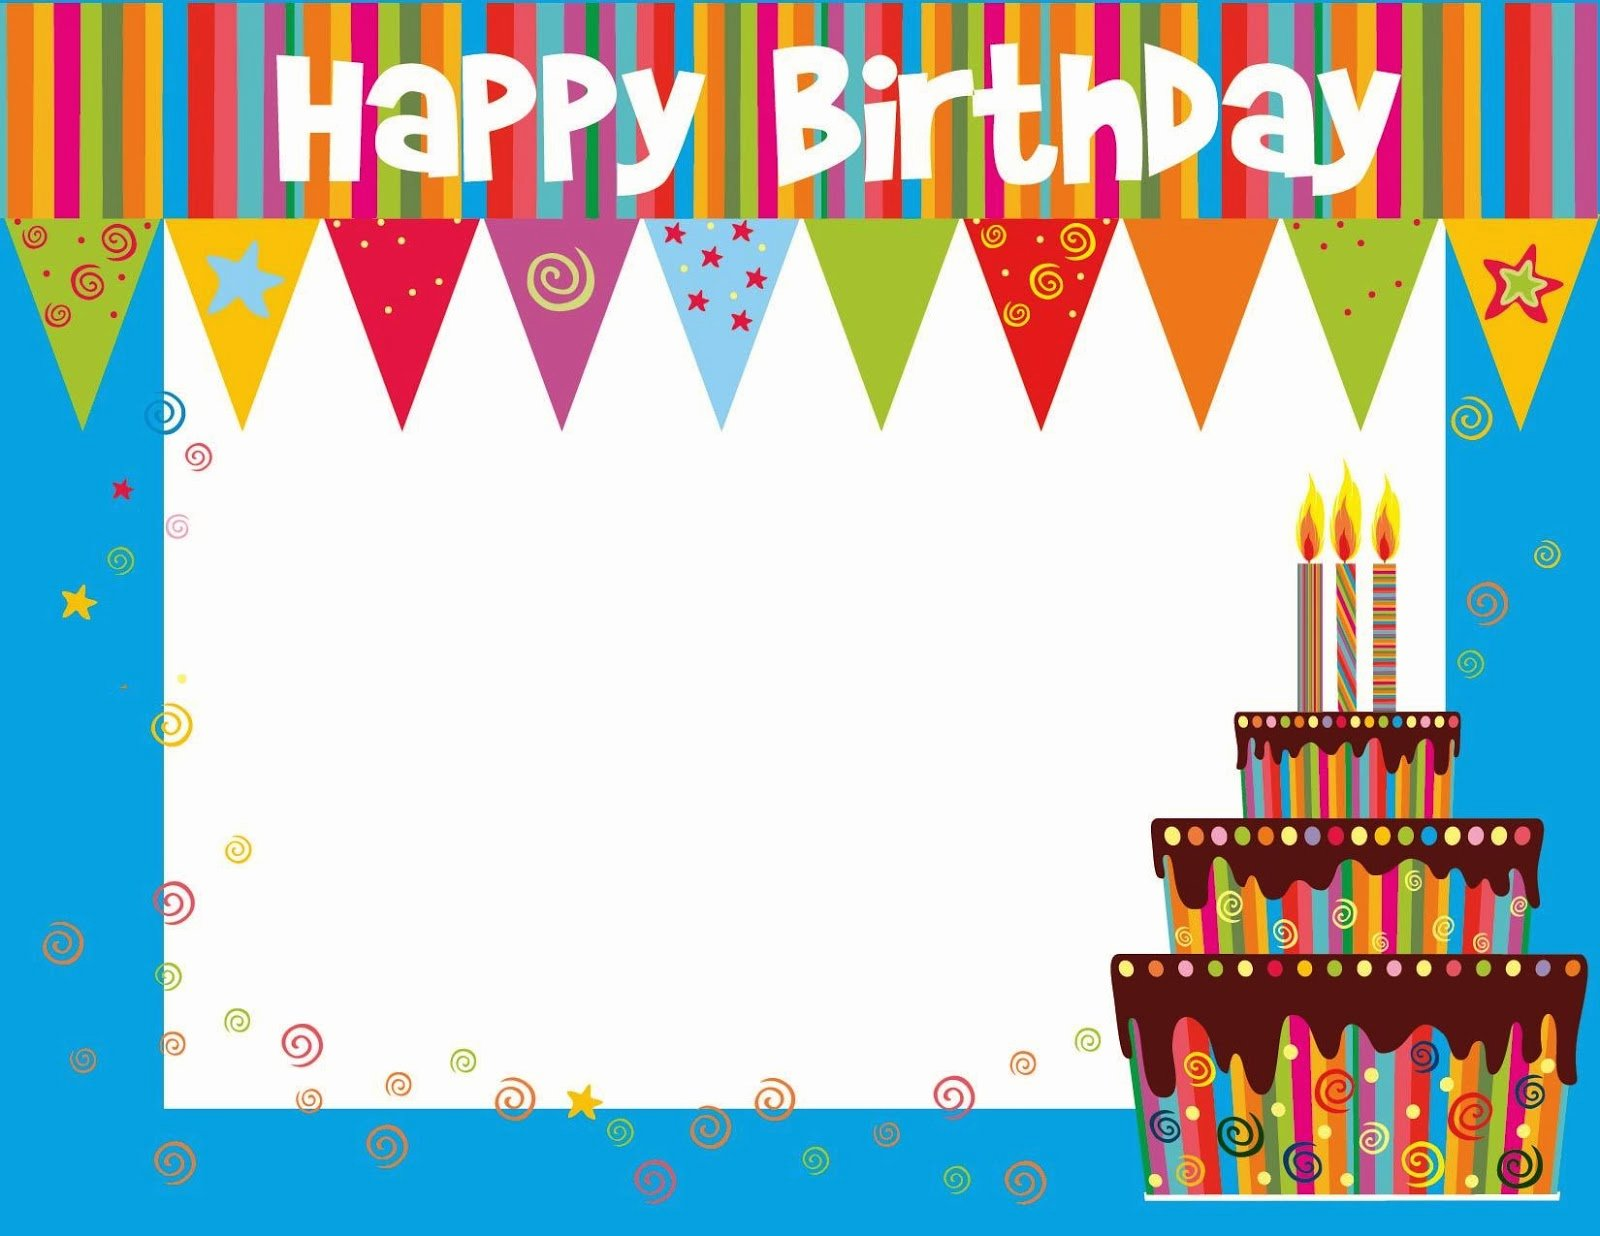 Free Happy Birthday Templates Awesome Free Printable Birthday Cards Ideas Greeting Card Template